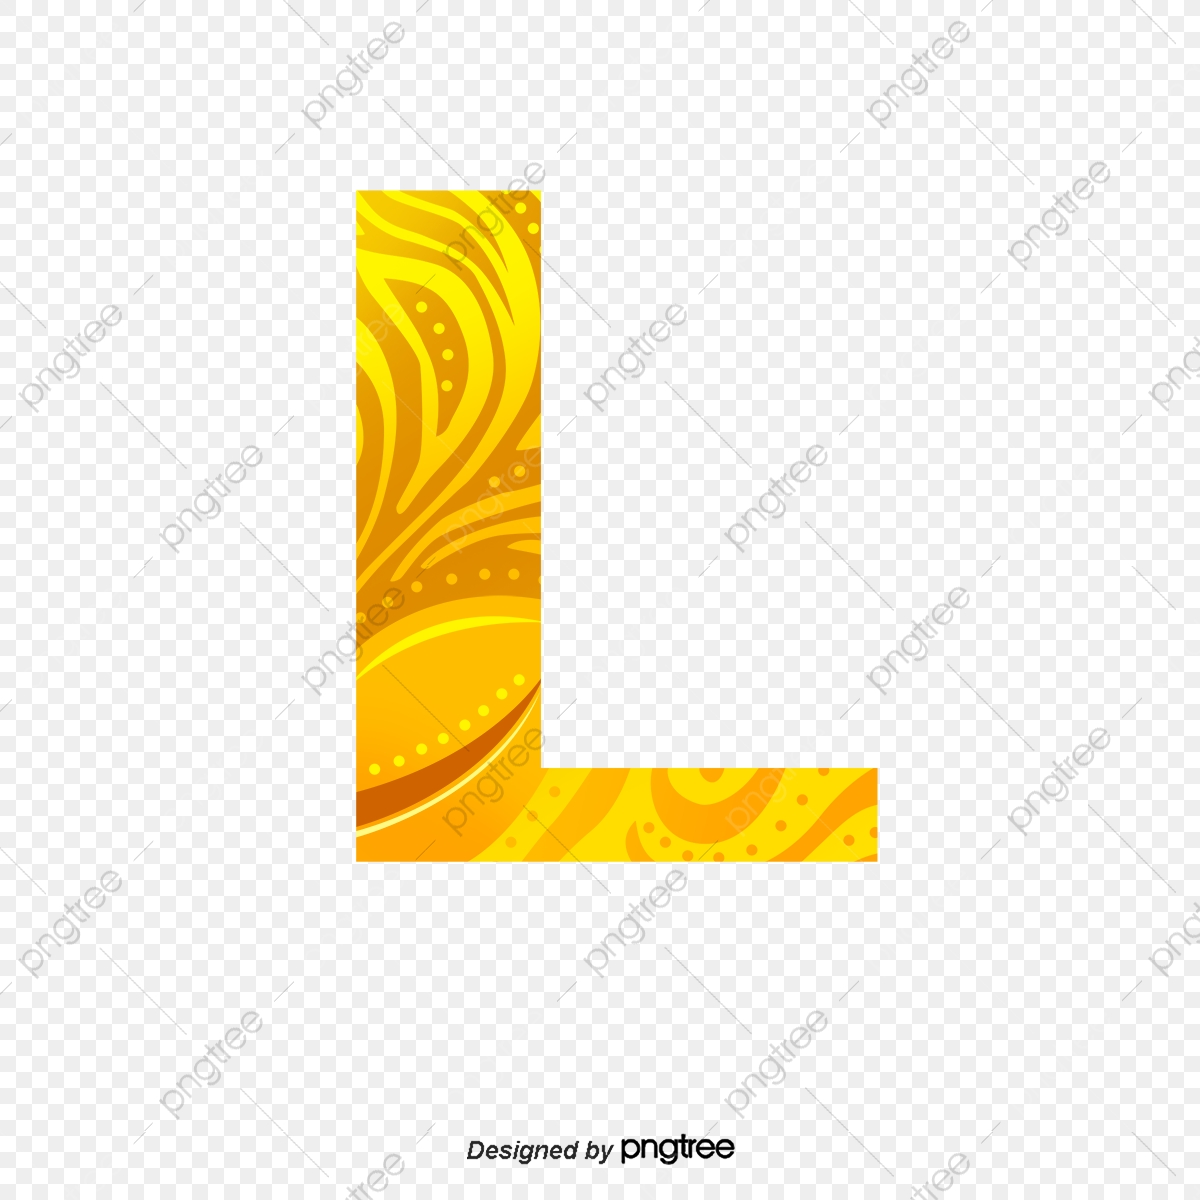 Golden Letters L, Golden, Golden Letters, Letter L PNG and Vector.